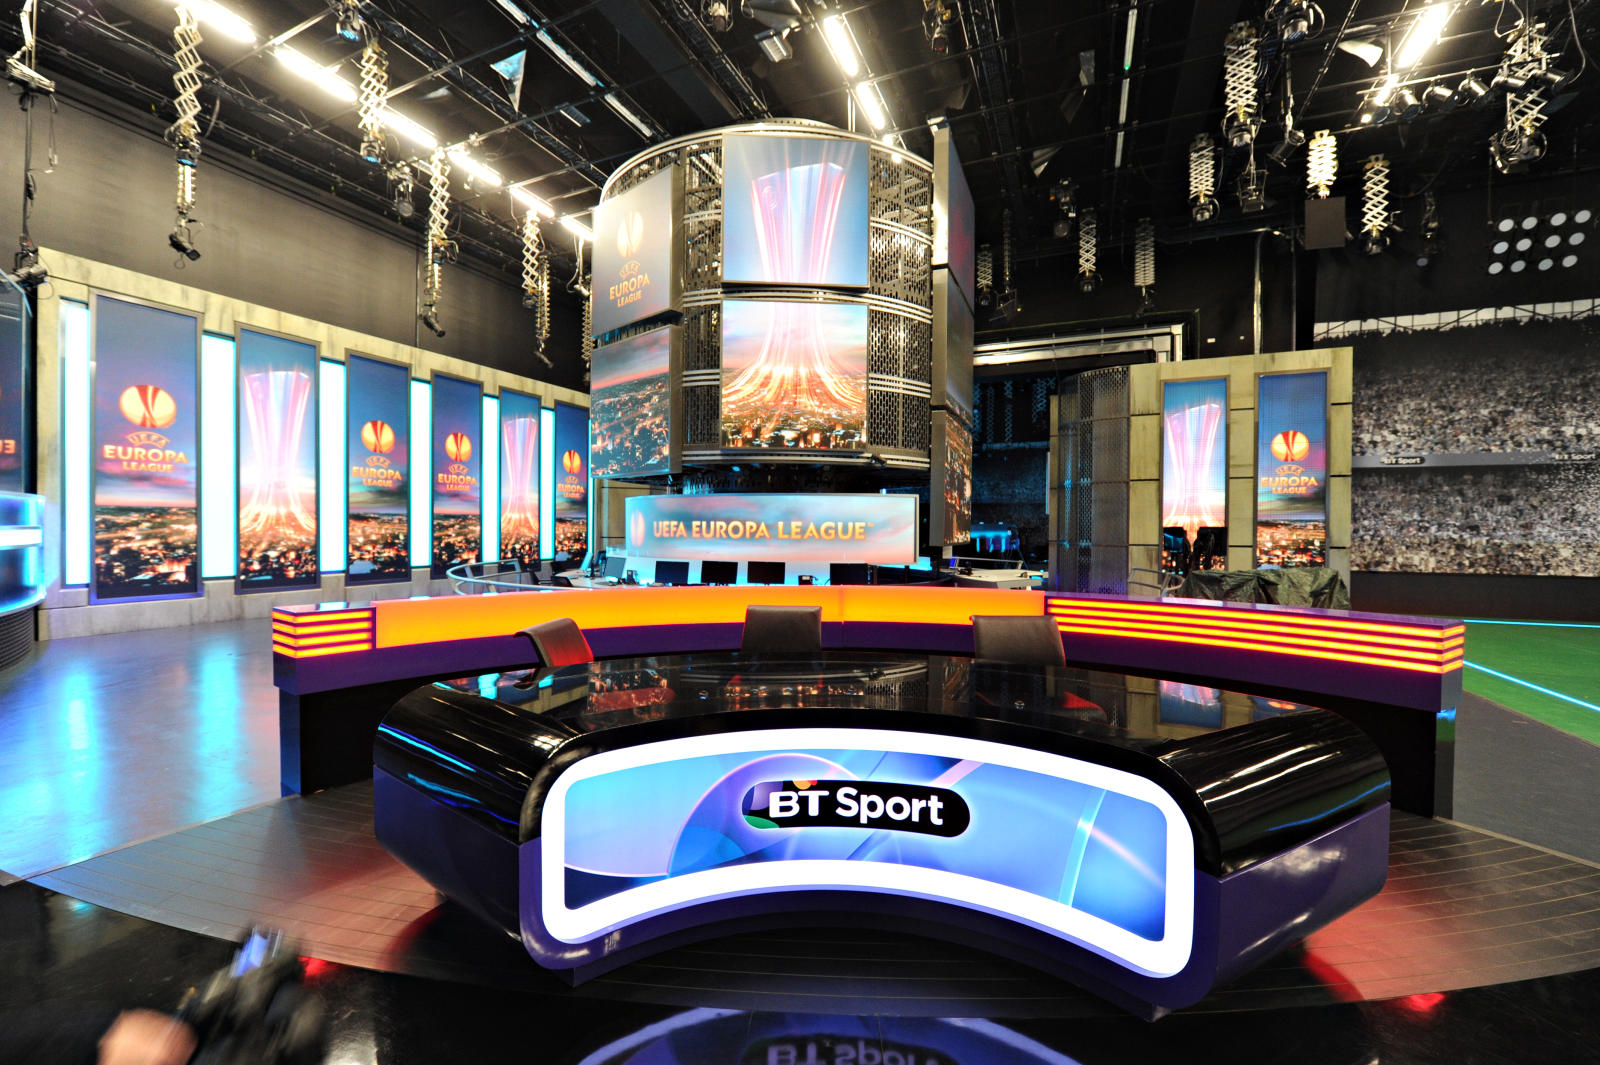 bt sport studio tour